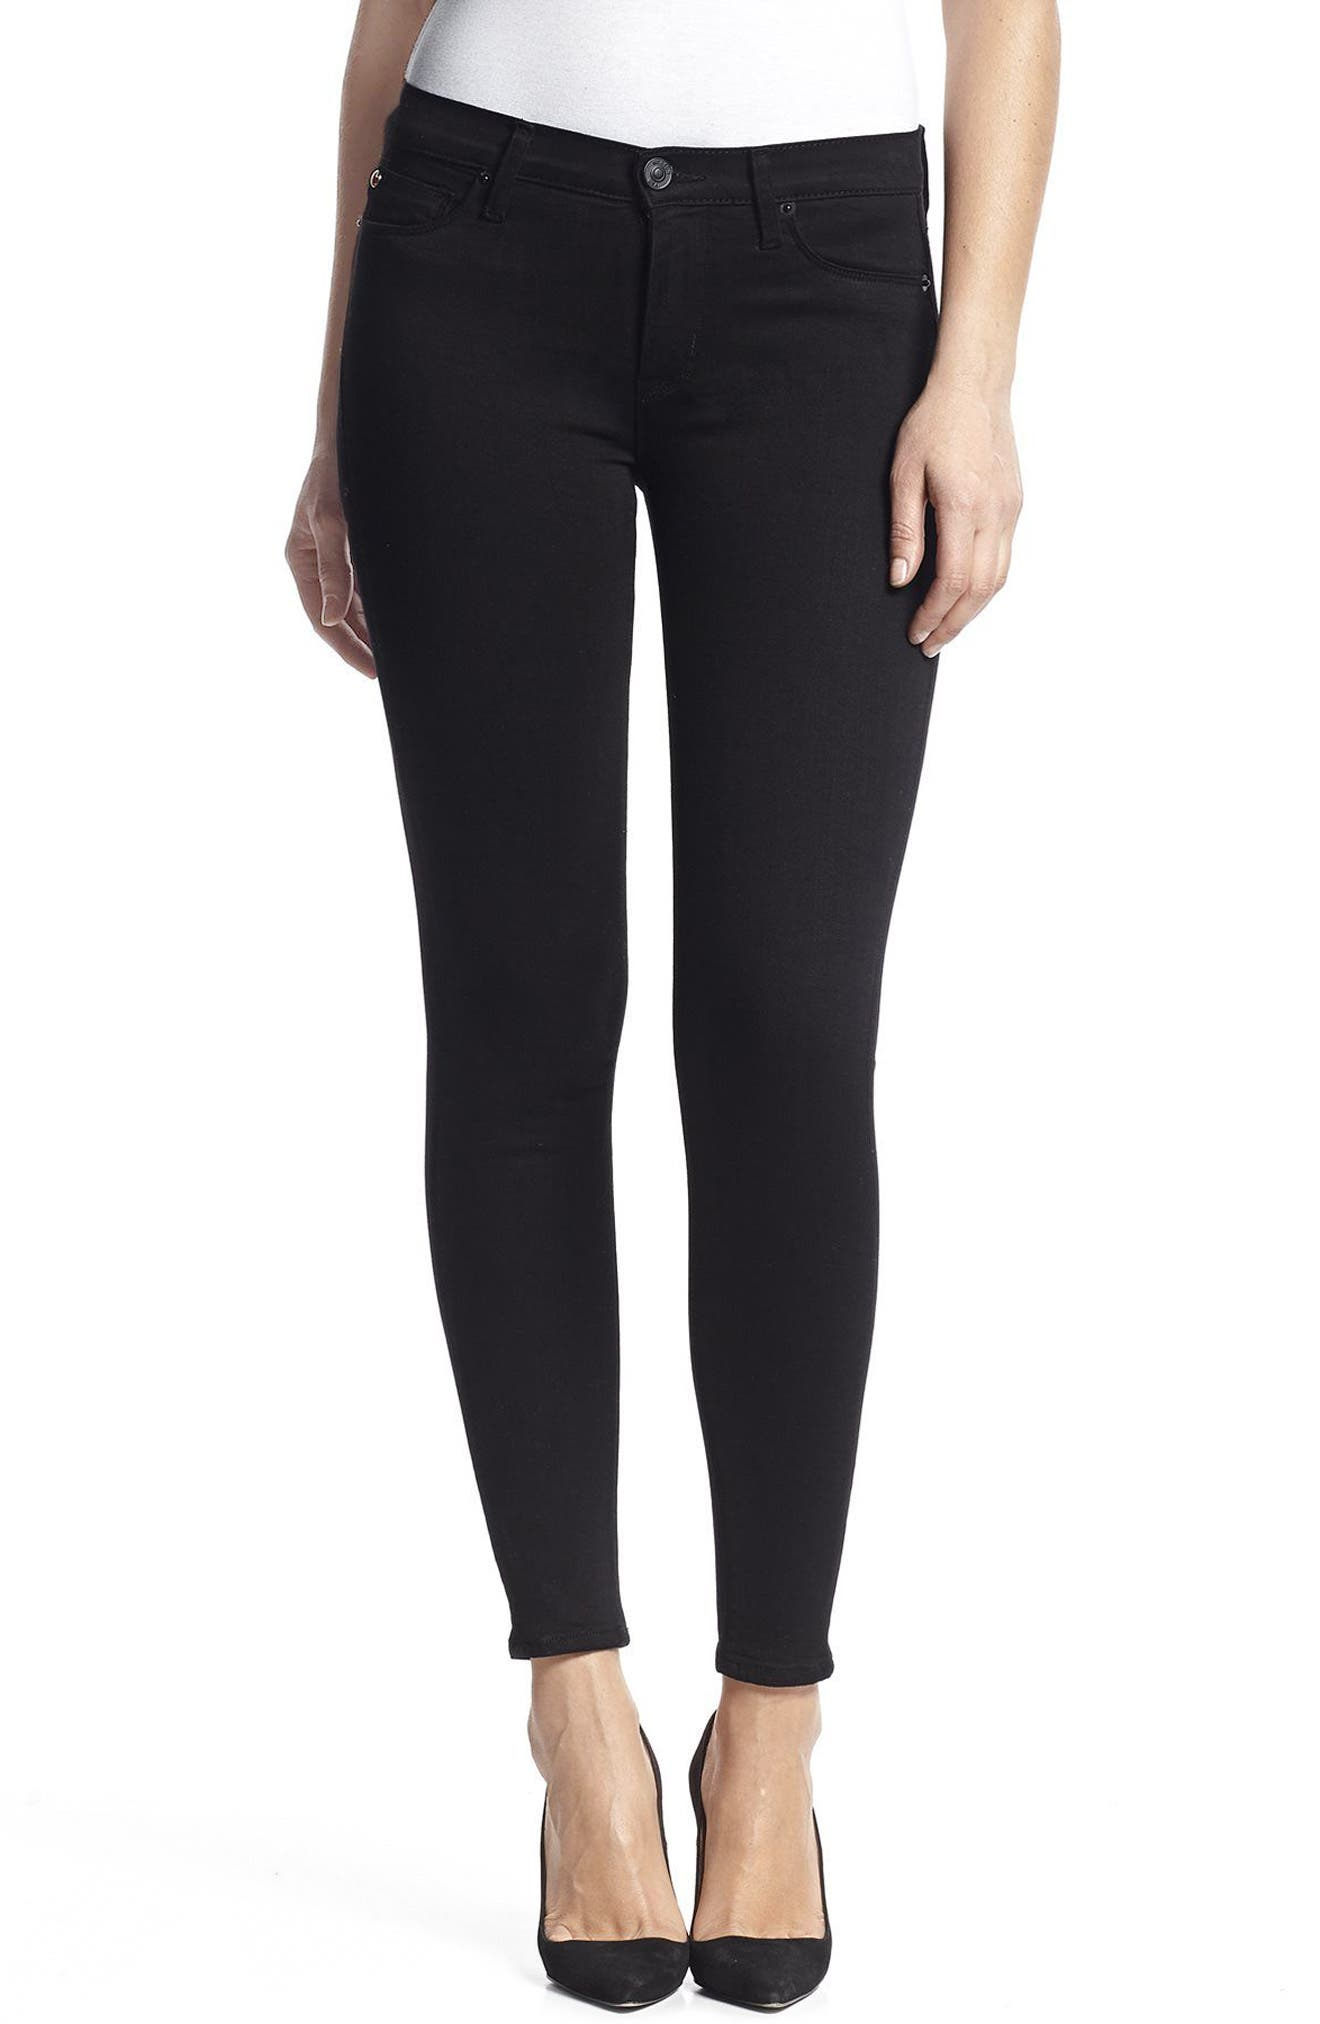 Alternate Image 1 Selected - Hudson Jeans Nico Supermodel Super Skinny Jeans (Long)